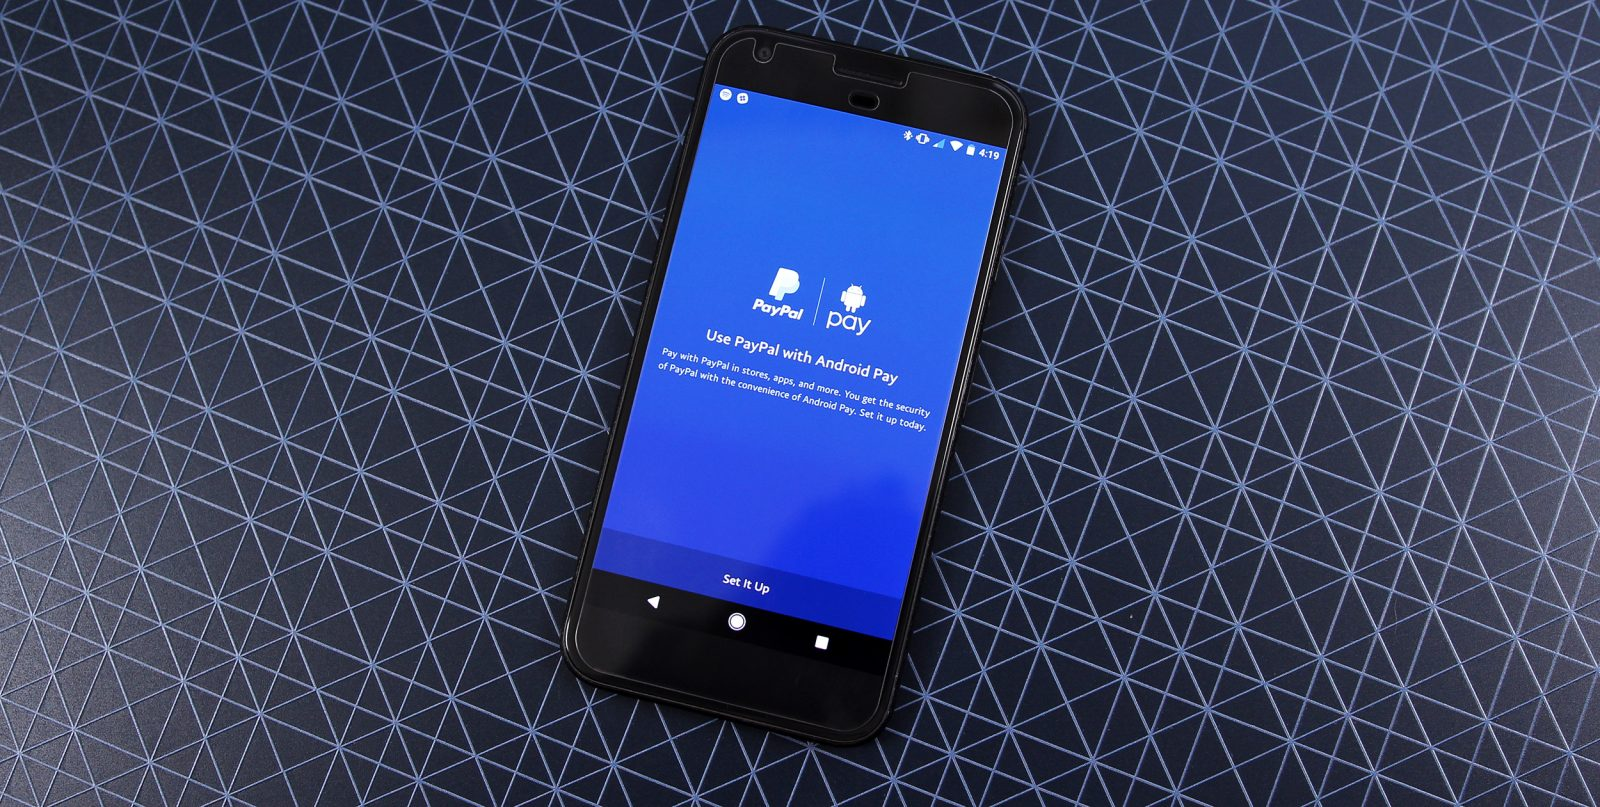 PayPal now supports Android Pay, here's how to set it up